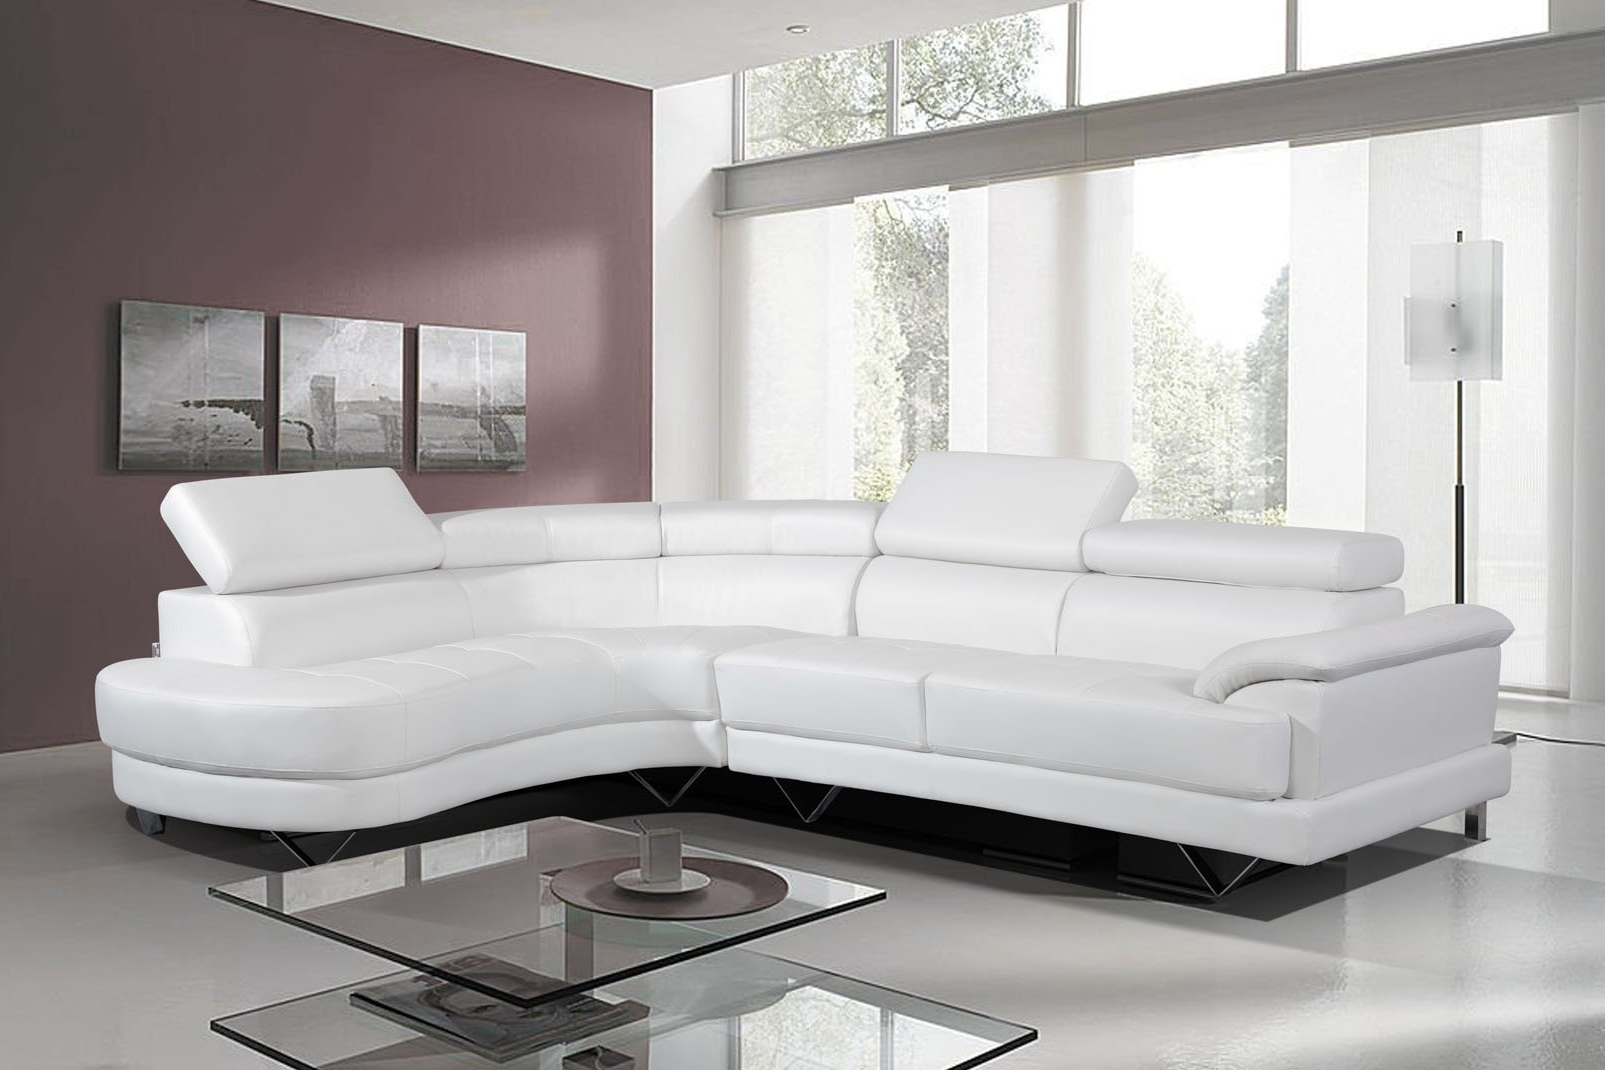 Leather Sofa Corner – Home And Textiles Inside Most Current Leather Corner Sofas (View 9 of 15)